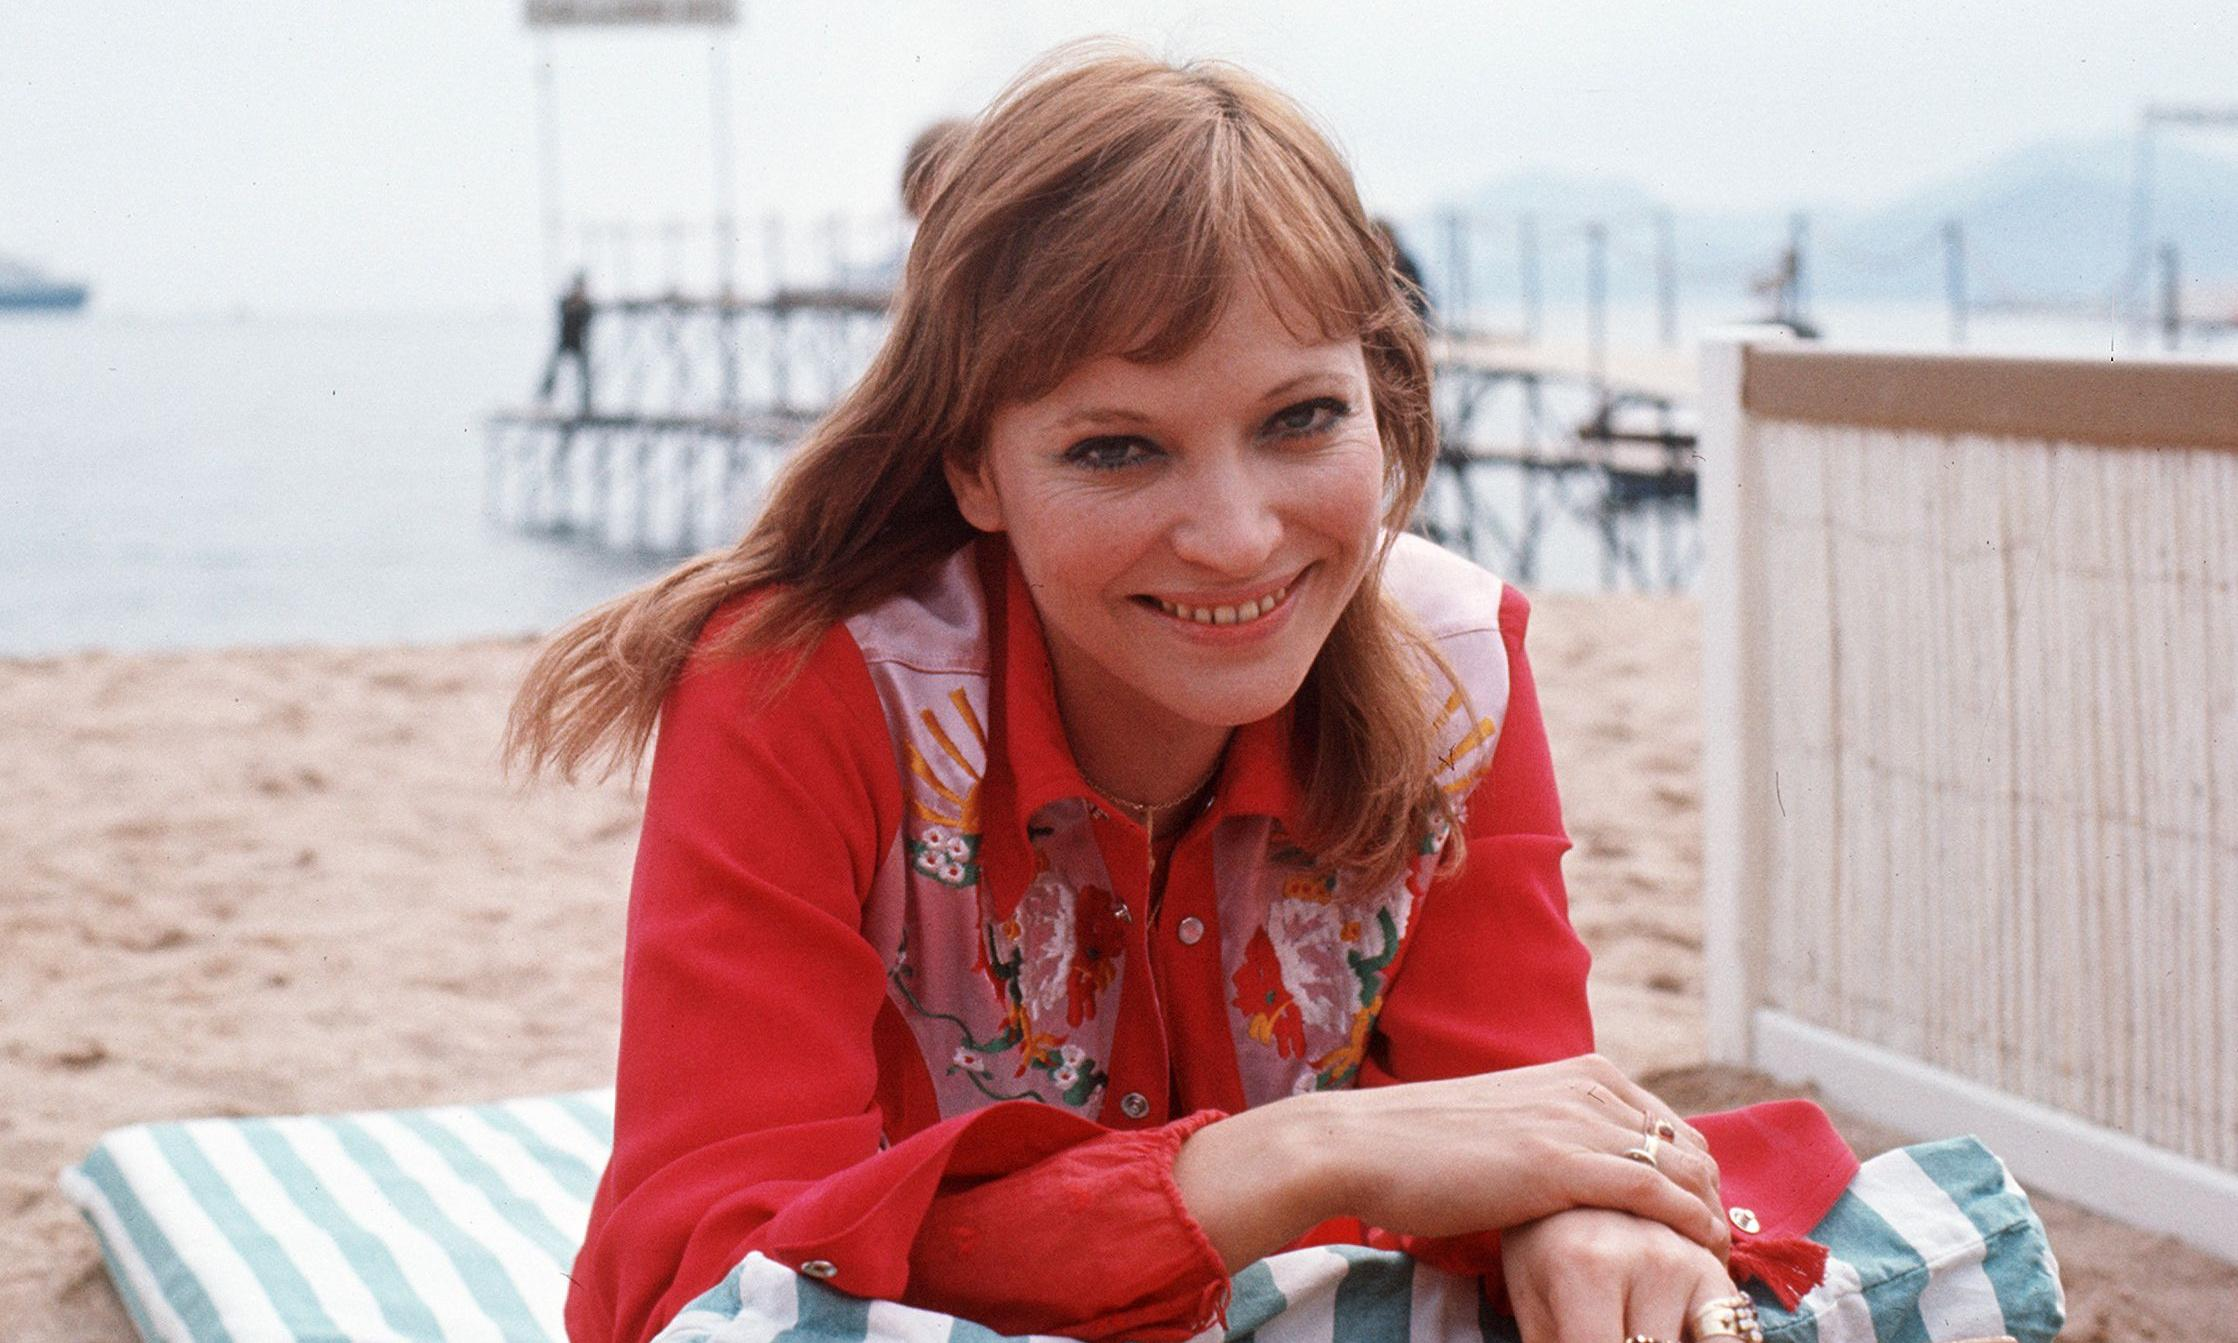 Anna Karina: an actor of easy charm and grace whose presence radiated from the screen